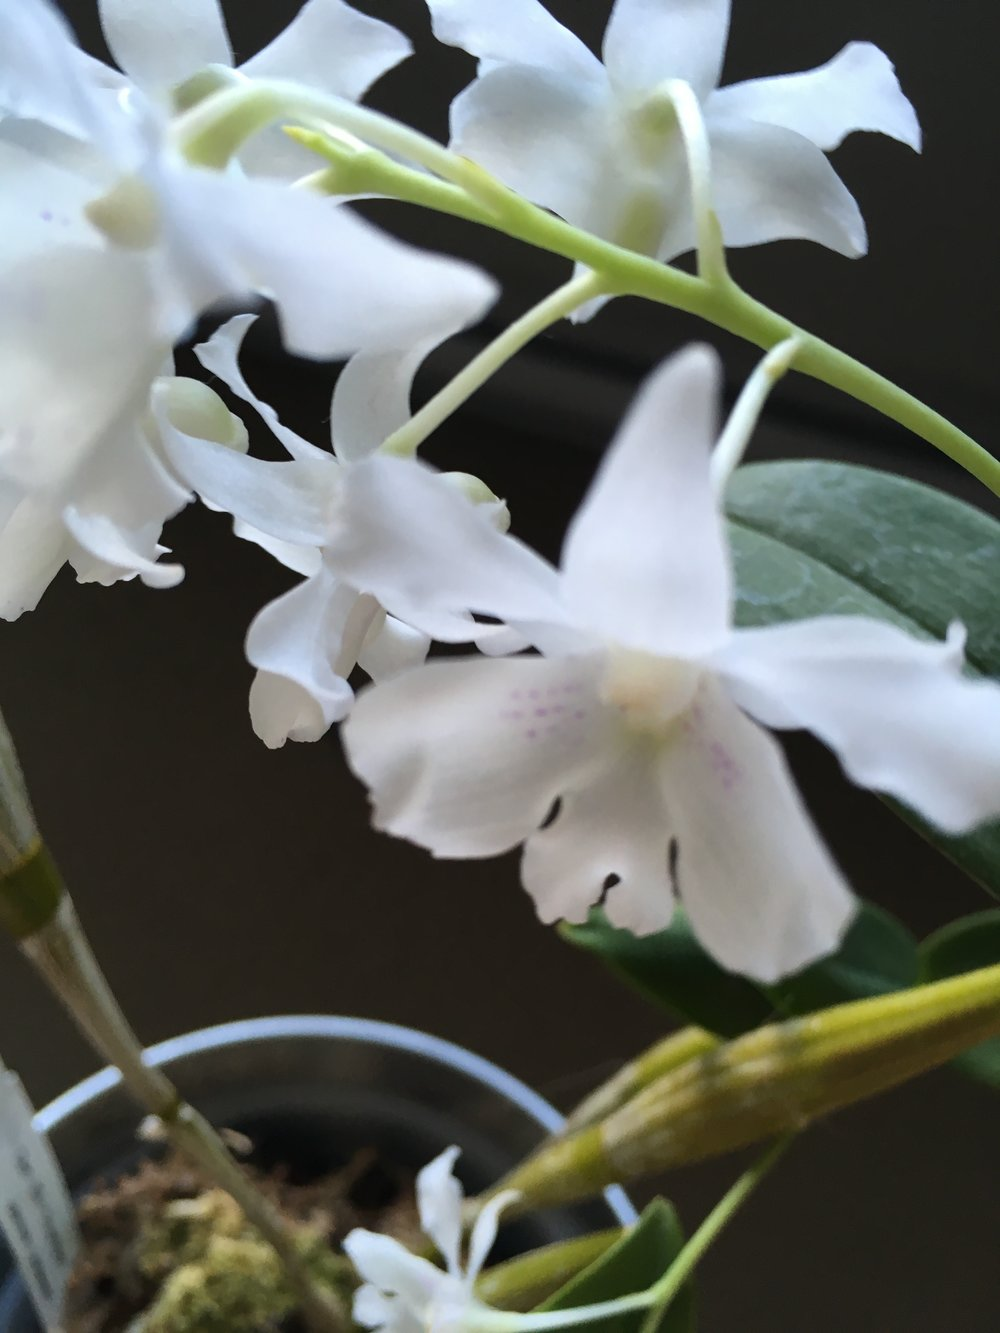 Dendrobium mini snowflake. Photo credit: Jessica Champagne. Check out those faint purple spots! This orchid is one of my recent favourites, all my other dendrobiums are nobile but those one I LOVE LOVE LOVE. Definitely on my list to get a similar one... maybe abberans?